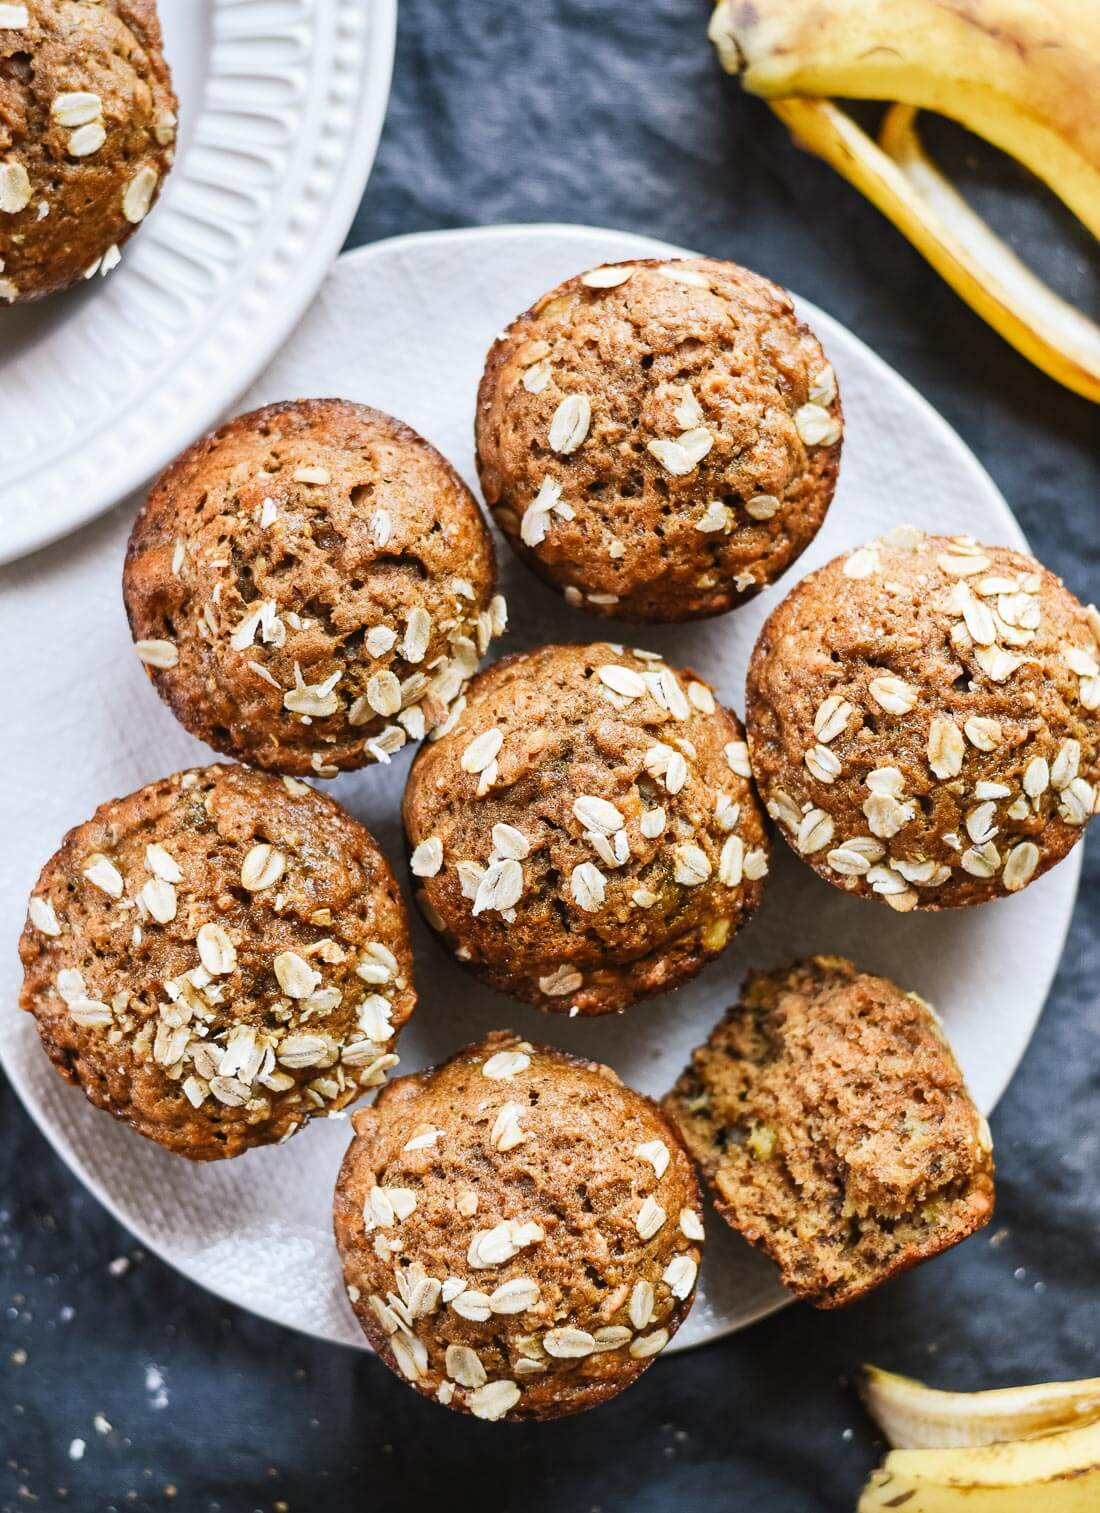 Healthy banana muffins recipe (whole grains, naturally sweetened and so good!) - cookieandkate.com